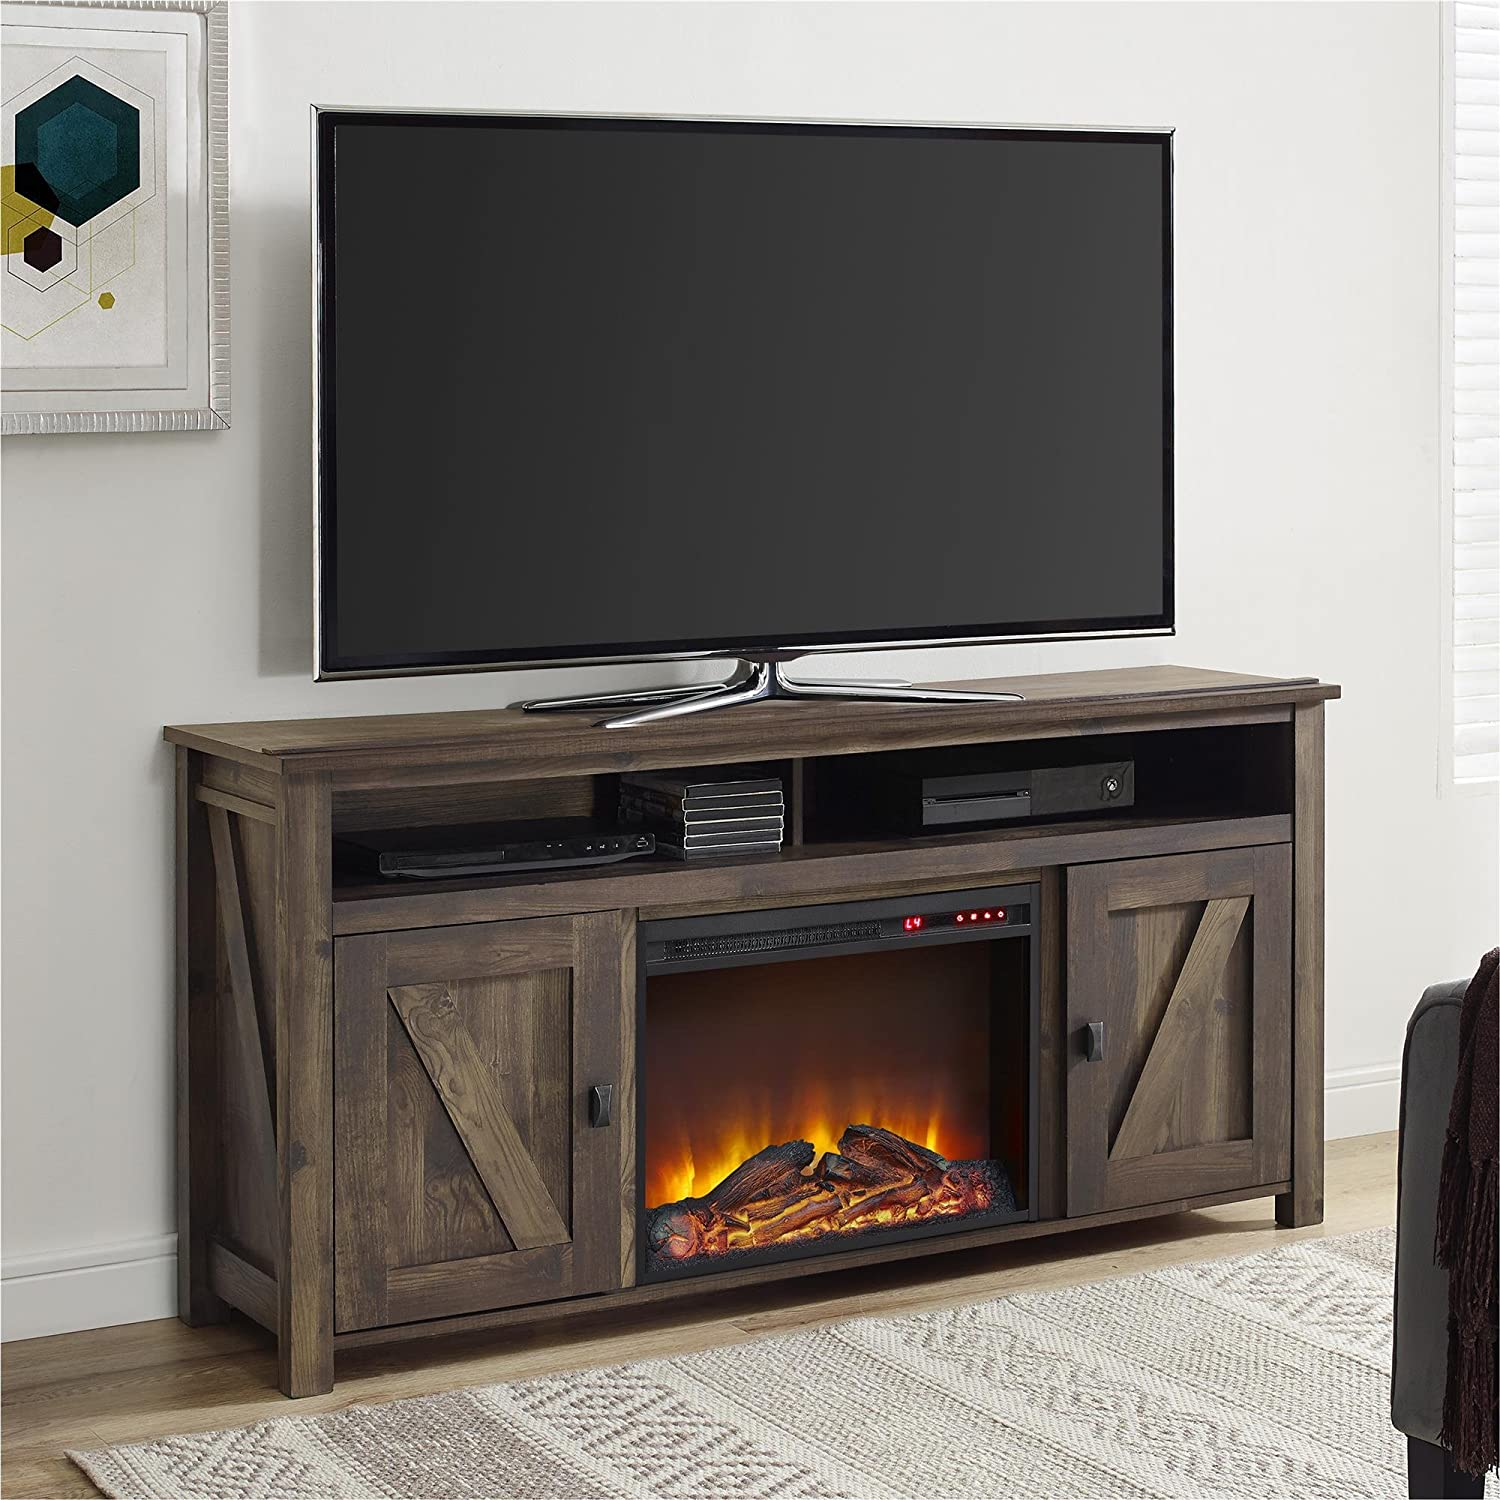 Amazon.com: Ameriwood Home Farmington Electric Fireplace TV ...